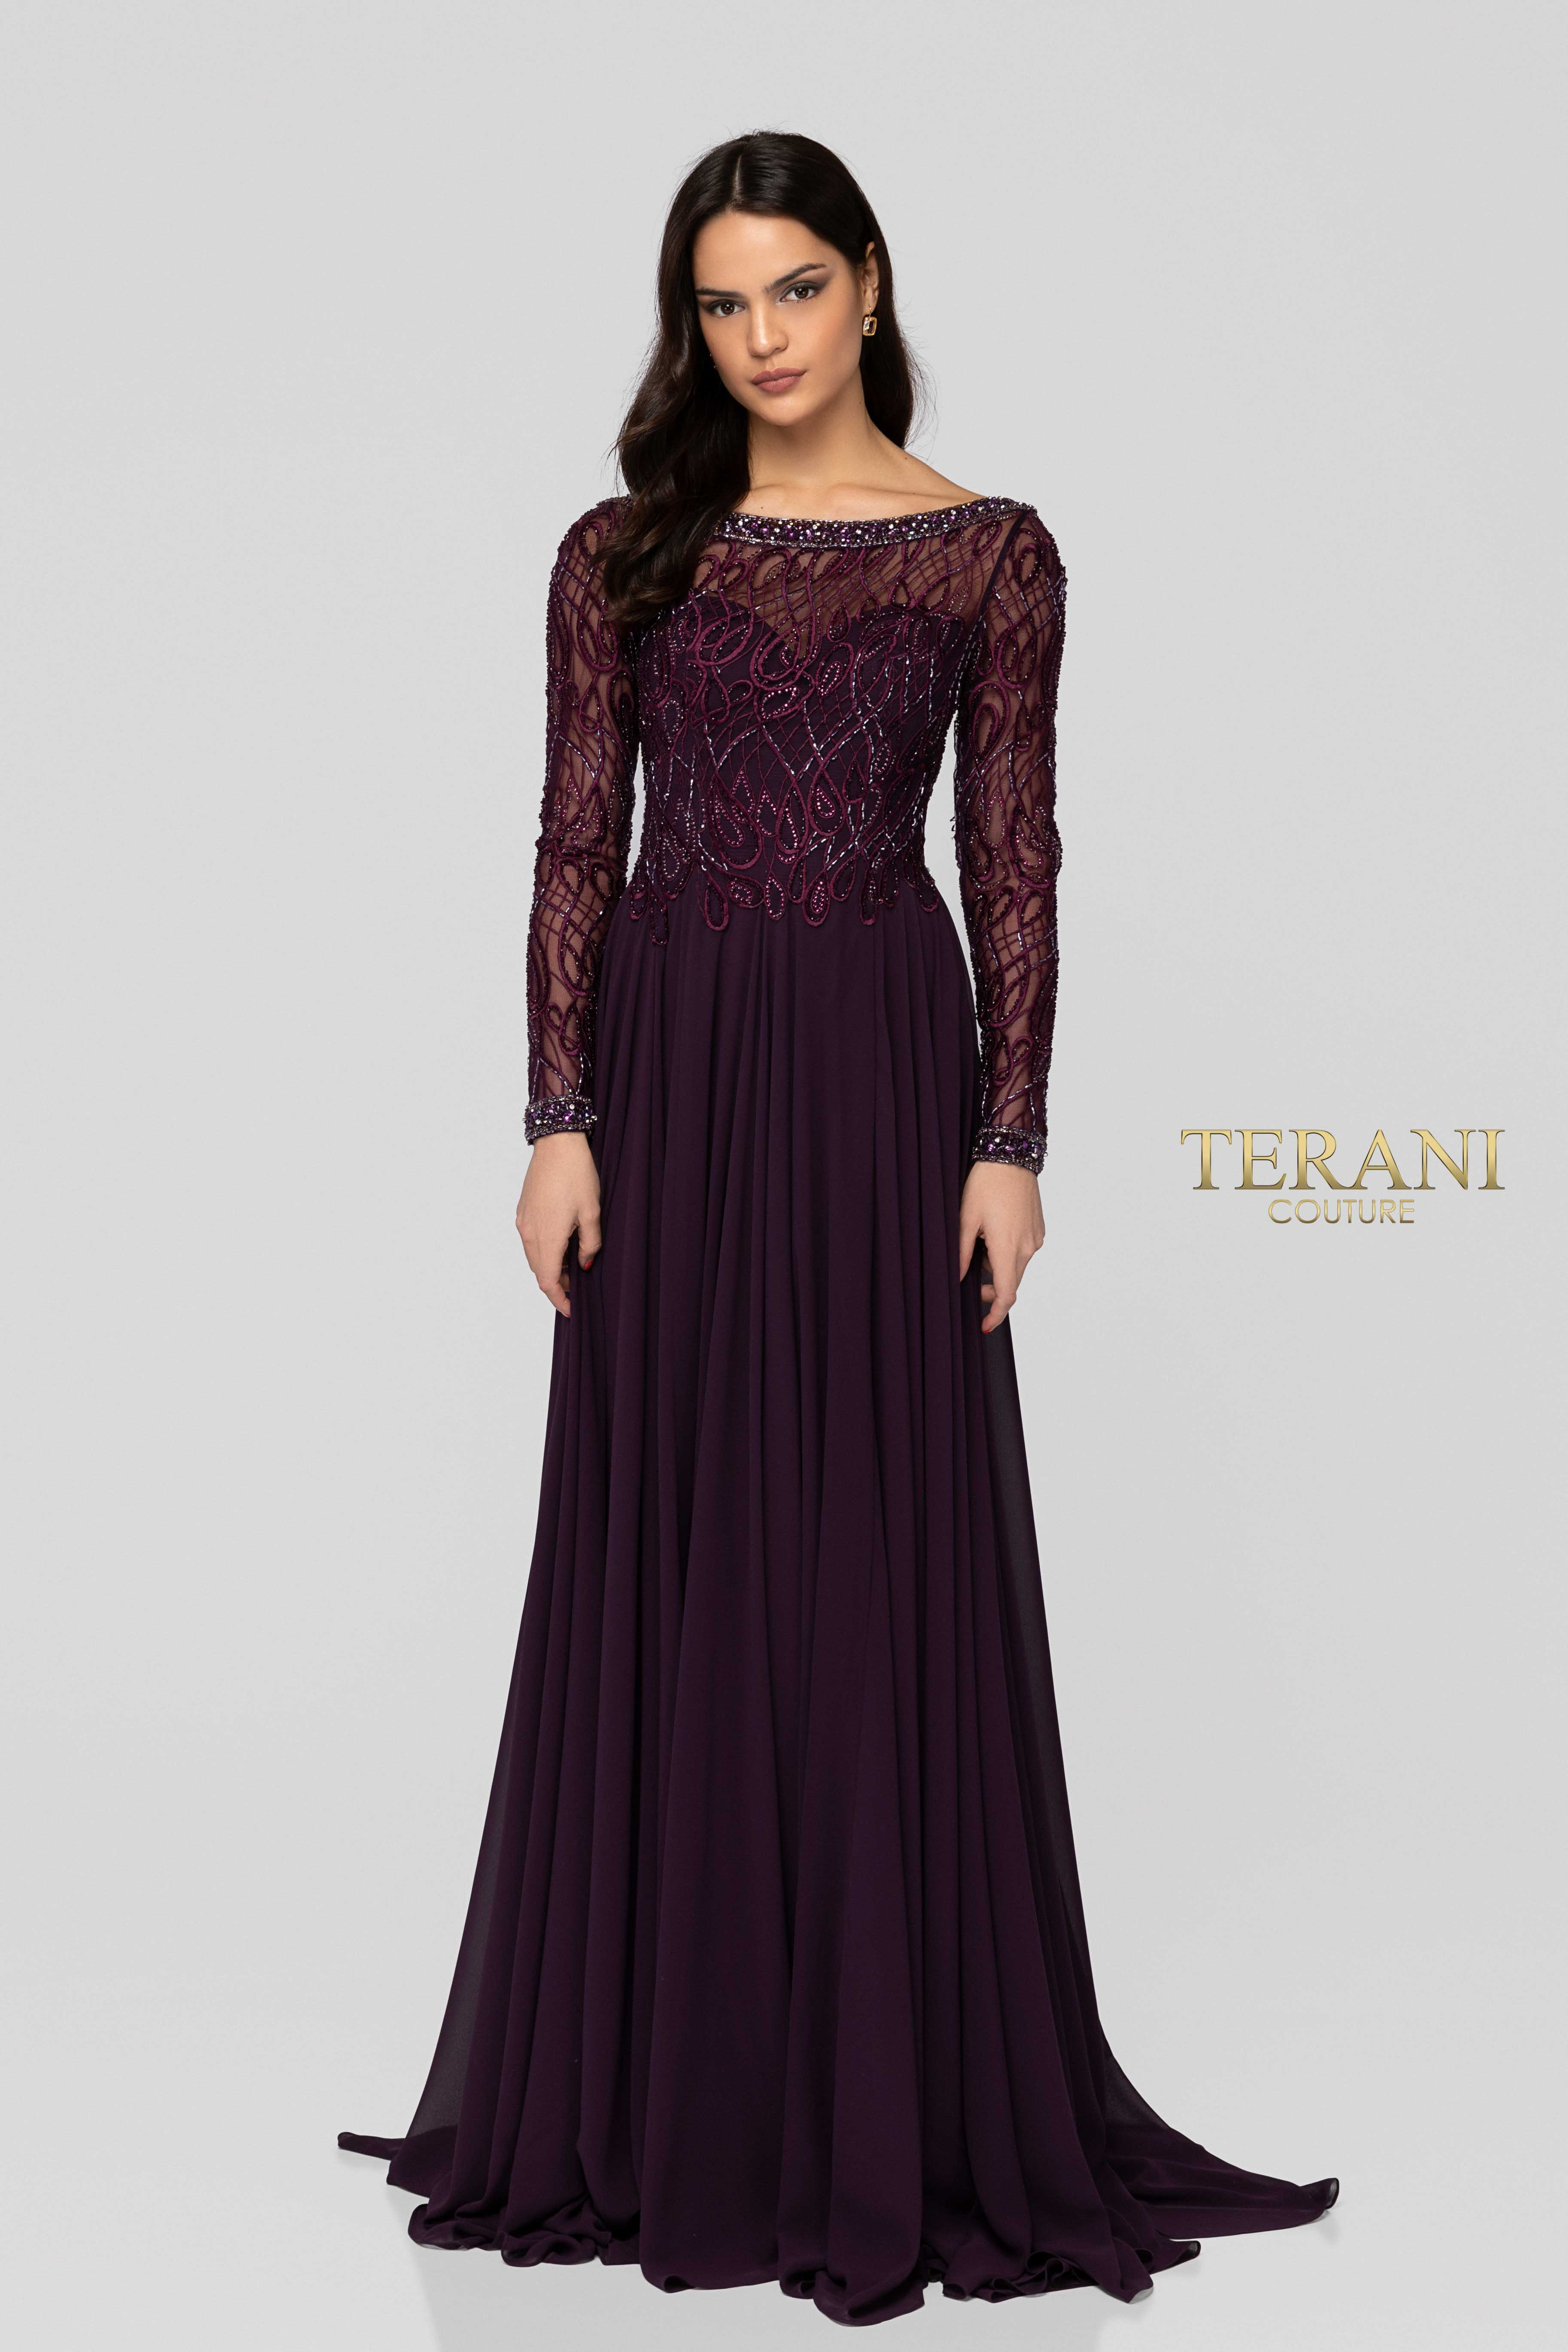 c4d6a7d222 Find stores near me. Find Terani Stores